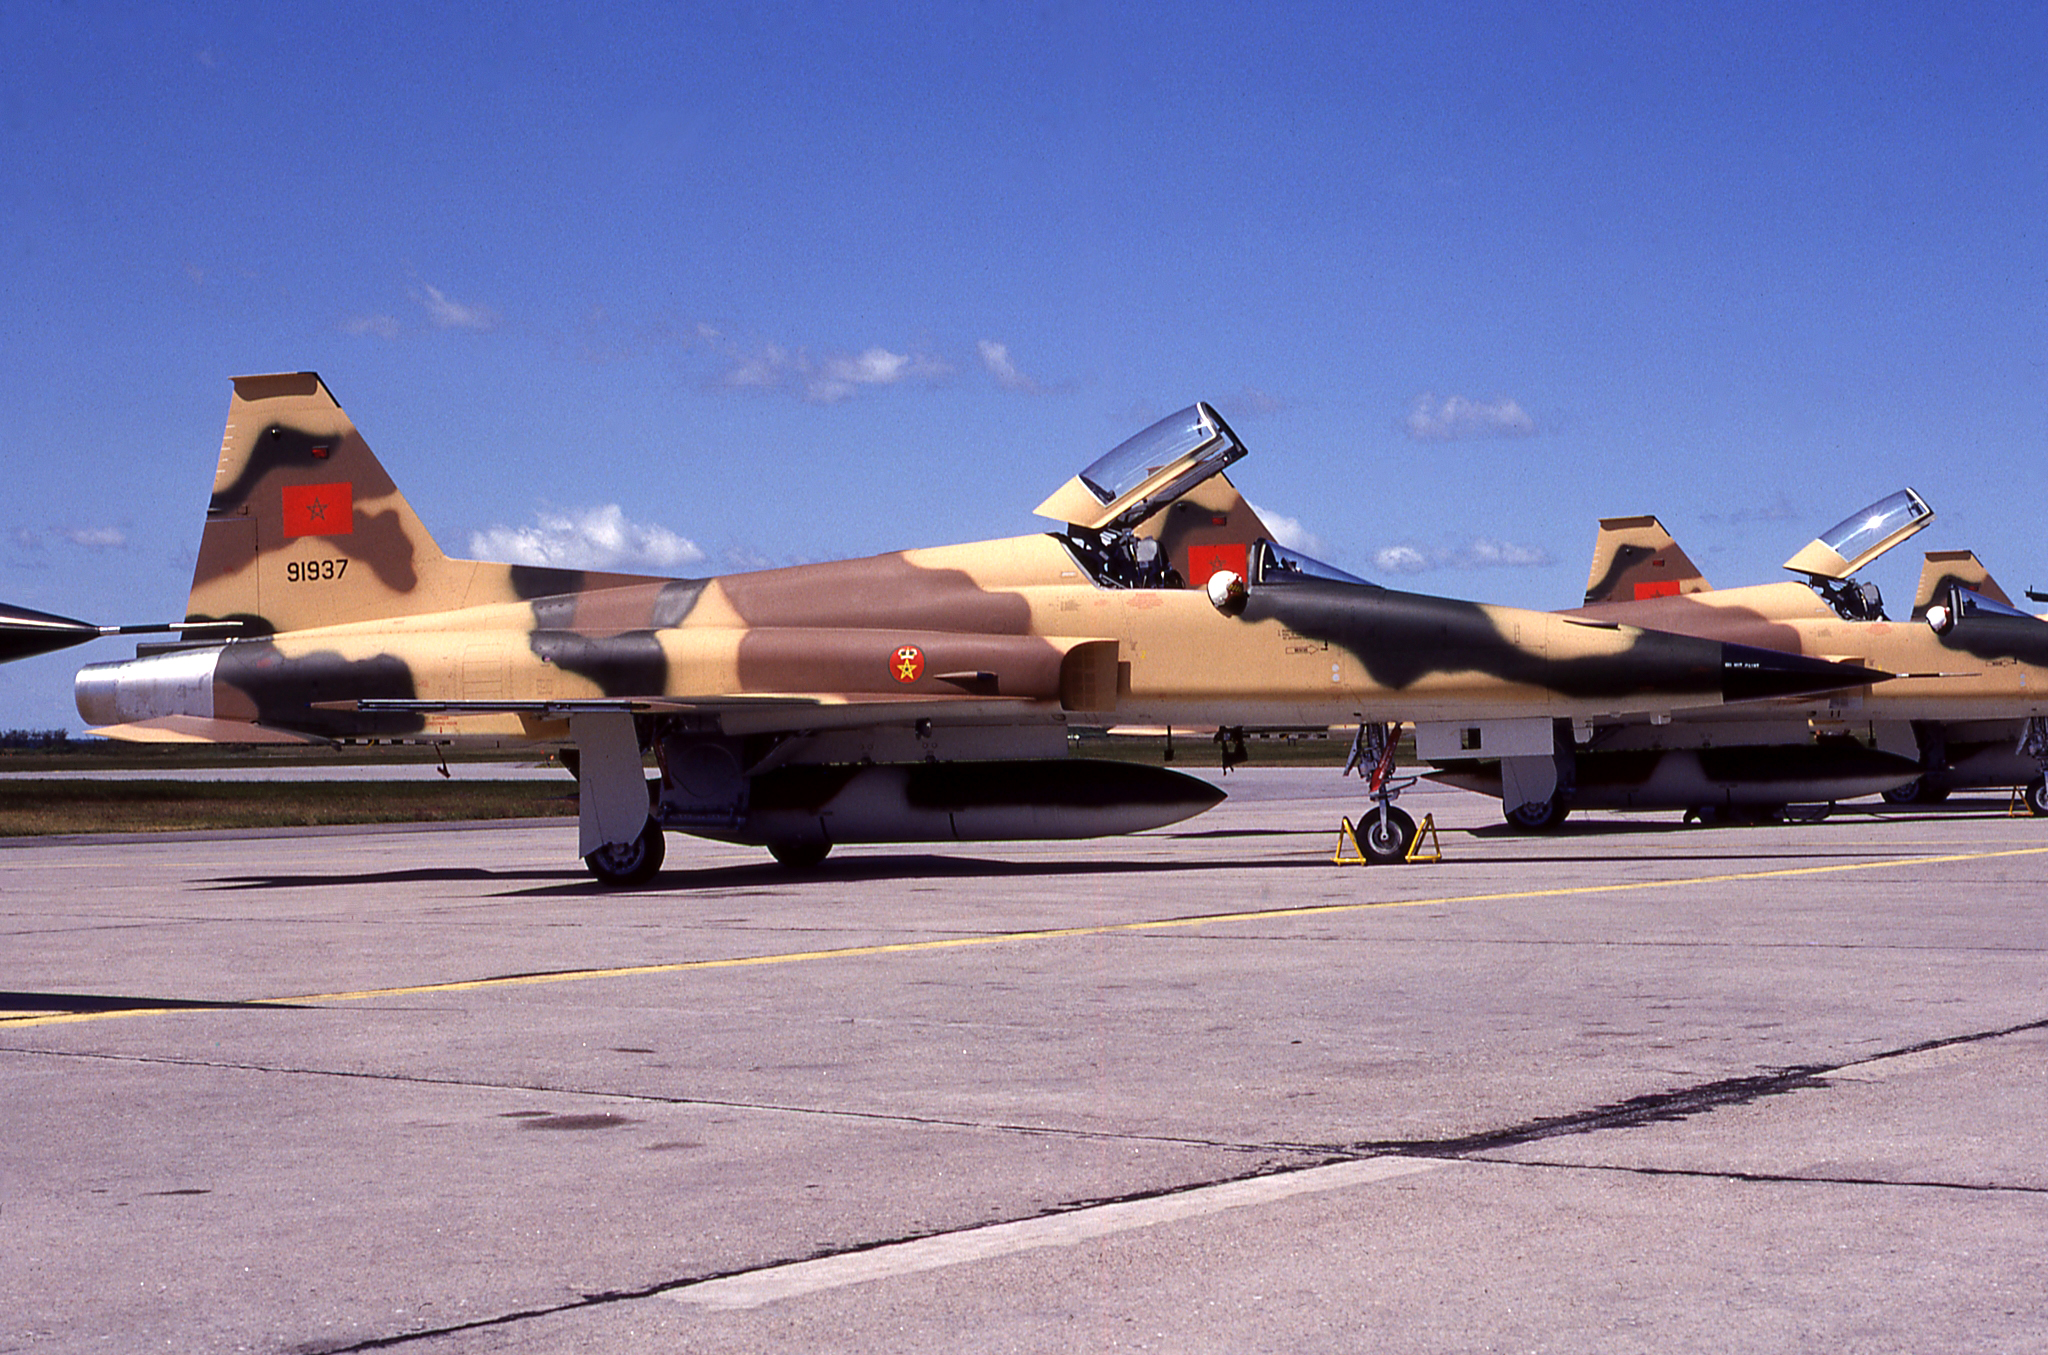 FRA: Photos F-5 marocains / Moroccan F-5  - Page 12 46399022905_7ff0d150bd_o